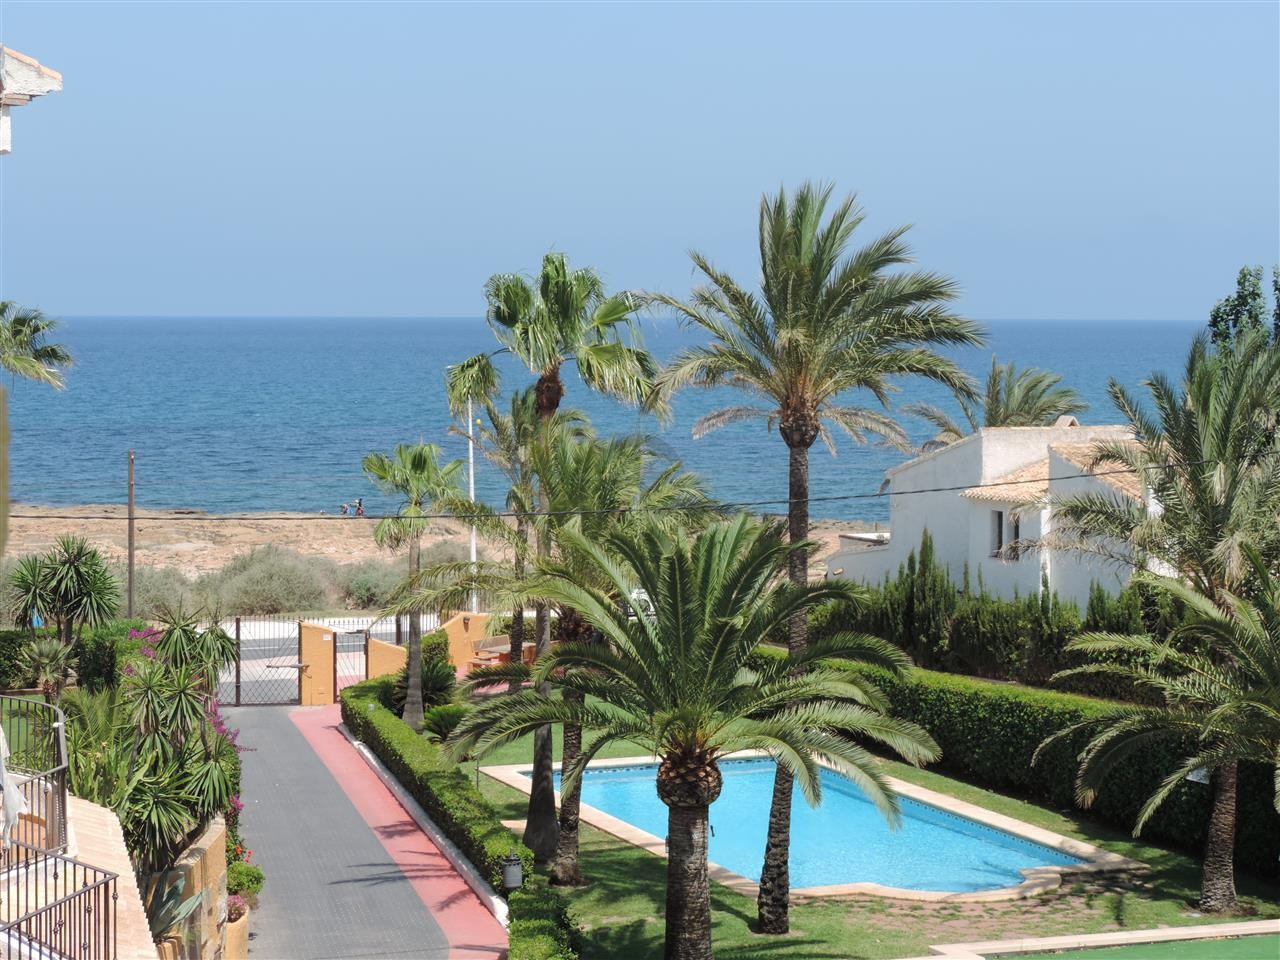 Apartment In Javea For Sale 2 Bedrooms 1 Bathroom, Alicante